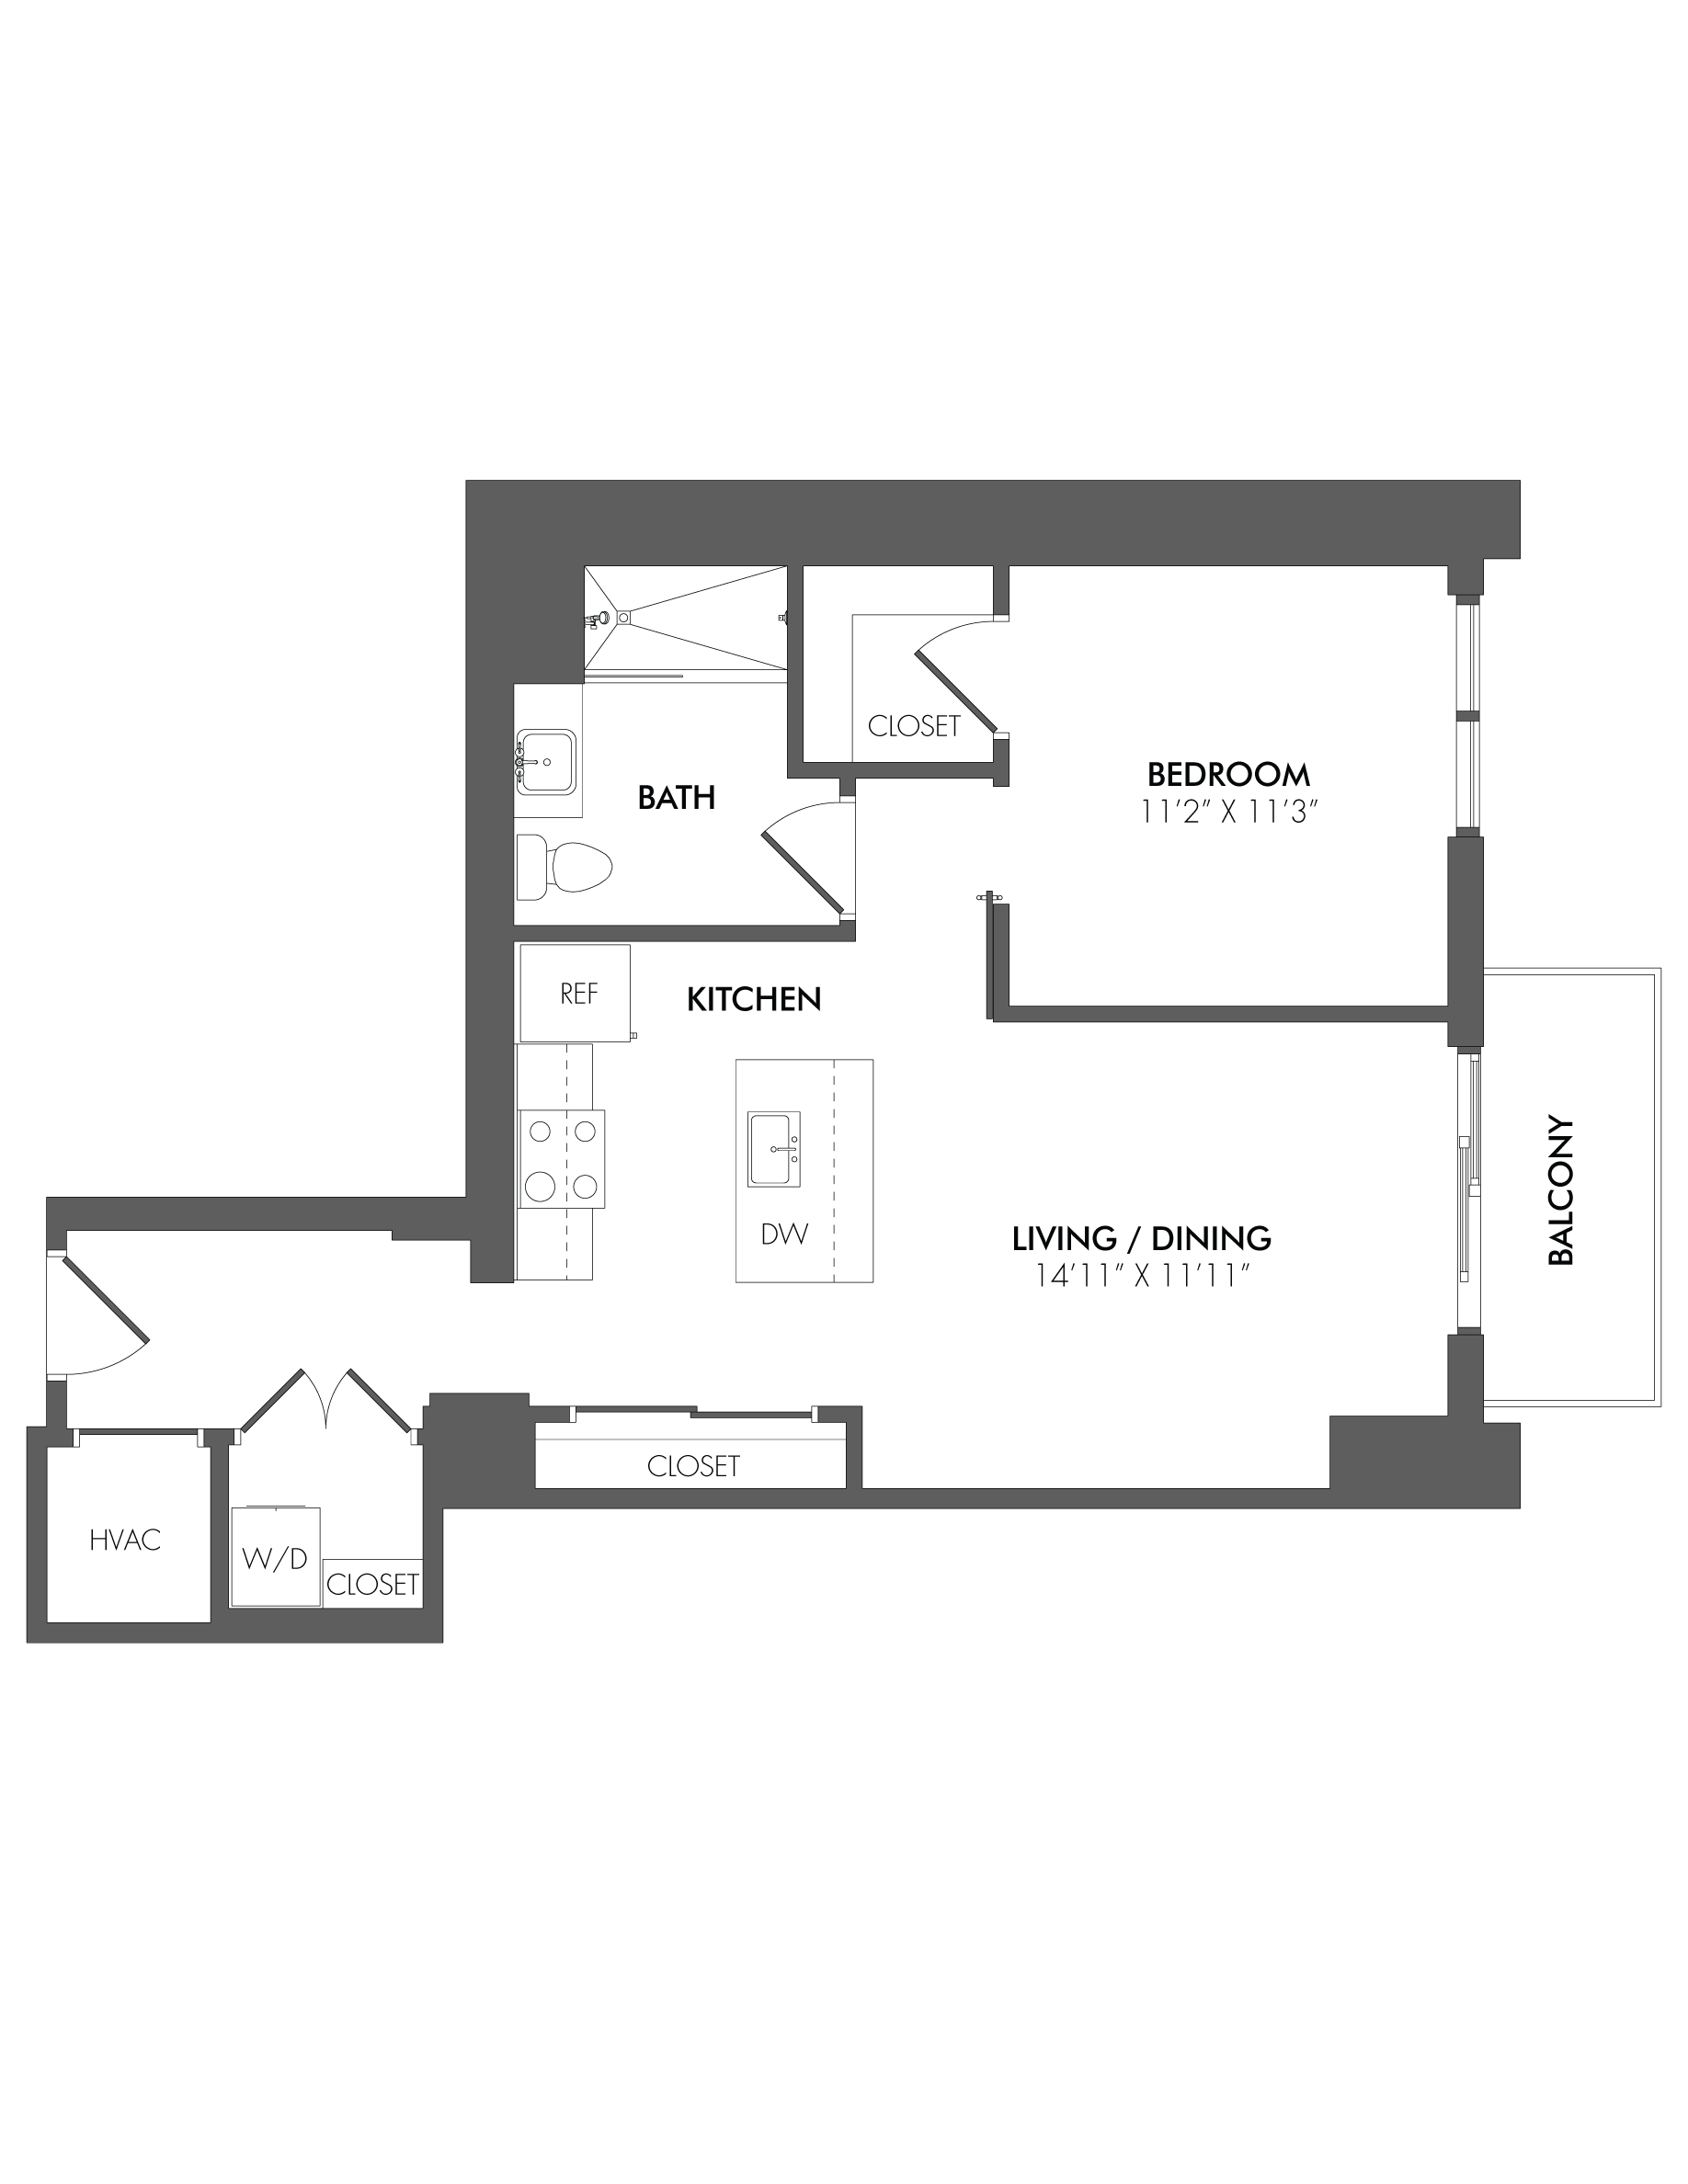 Apartment 2207 floorplan